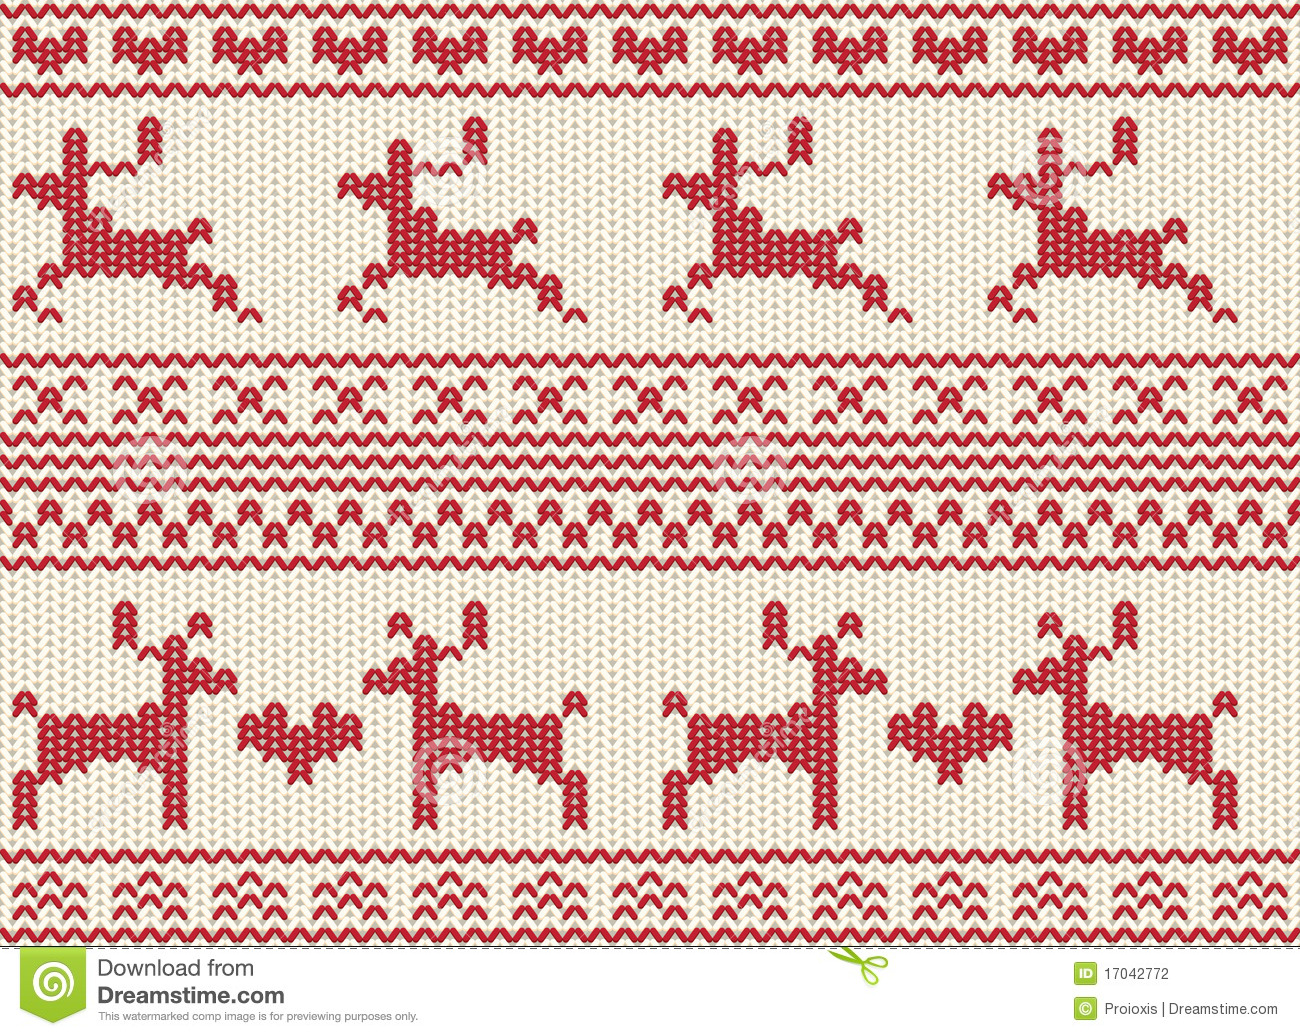 Fair Isle Knitting Patterns Free : Seamless Reindeer Fair Isle Knit Stock Photography - Image: 17042772